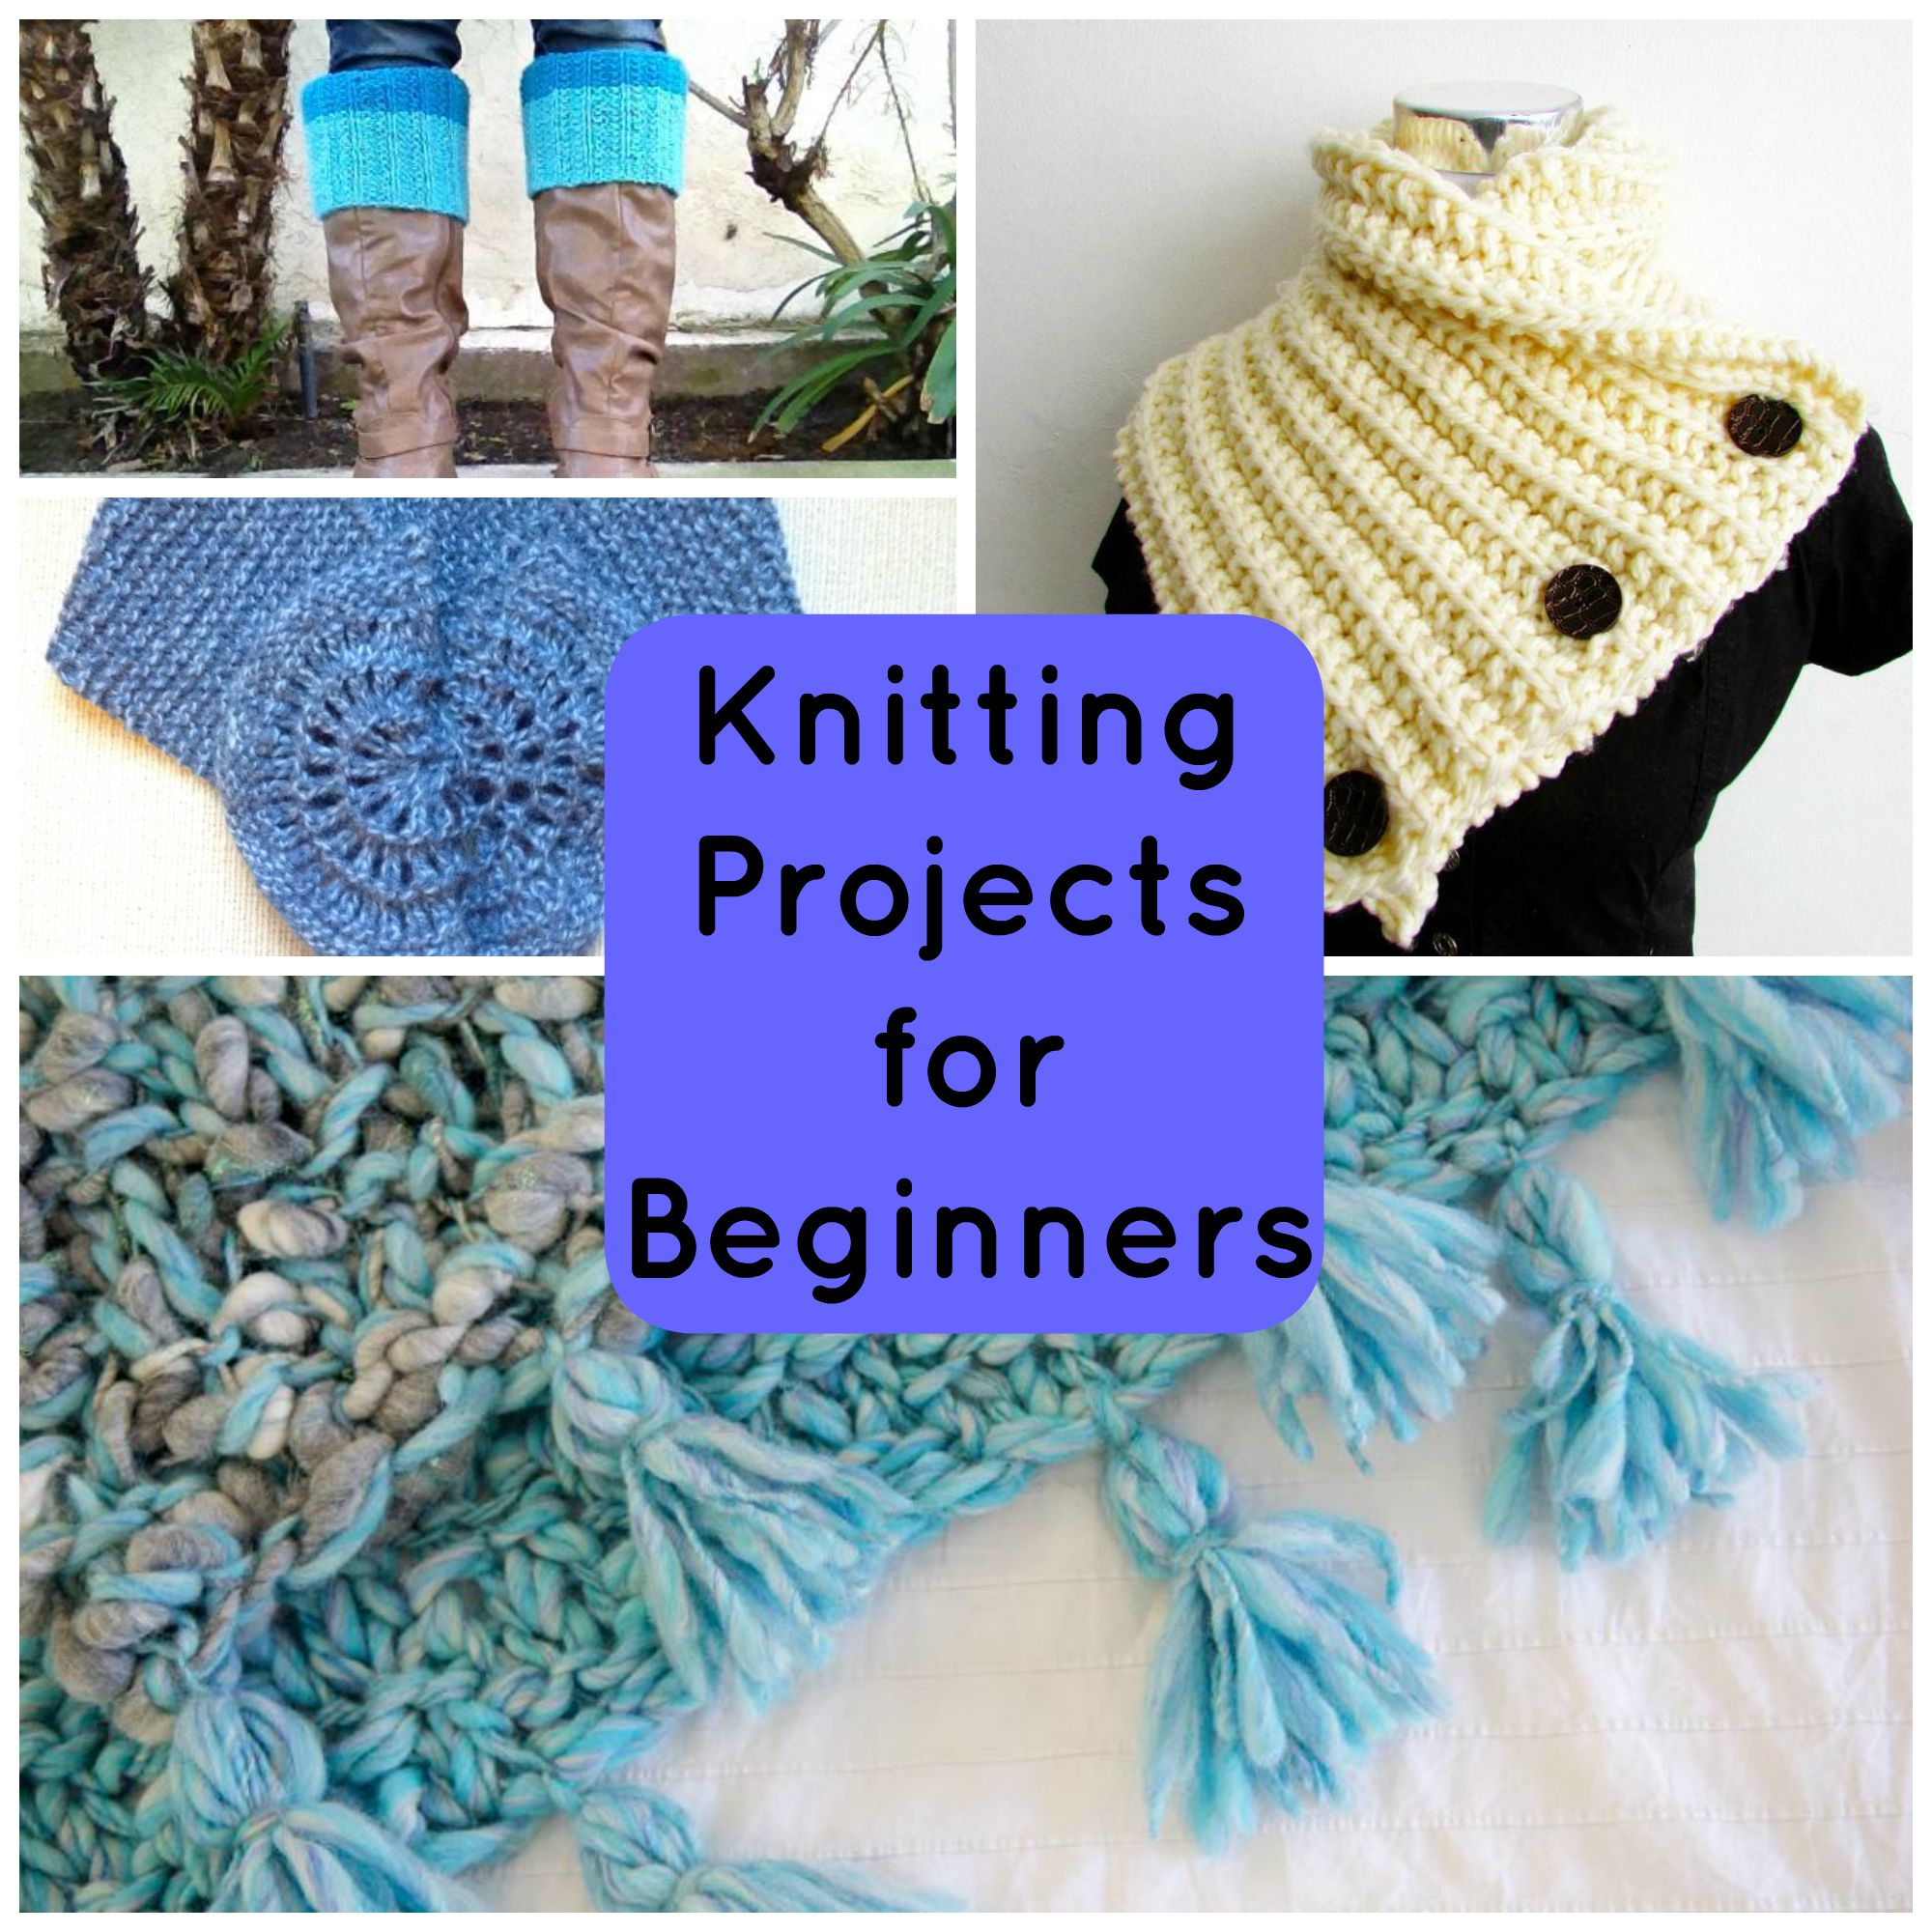 Best knitting patterns for beginners get great knitting projects for beginners on craftsy! zajlbuf